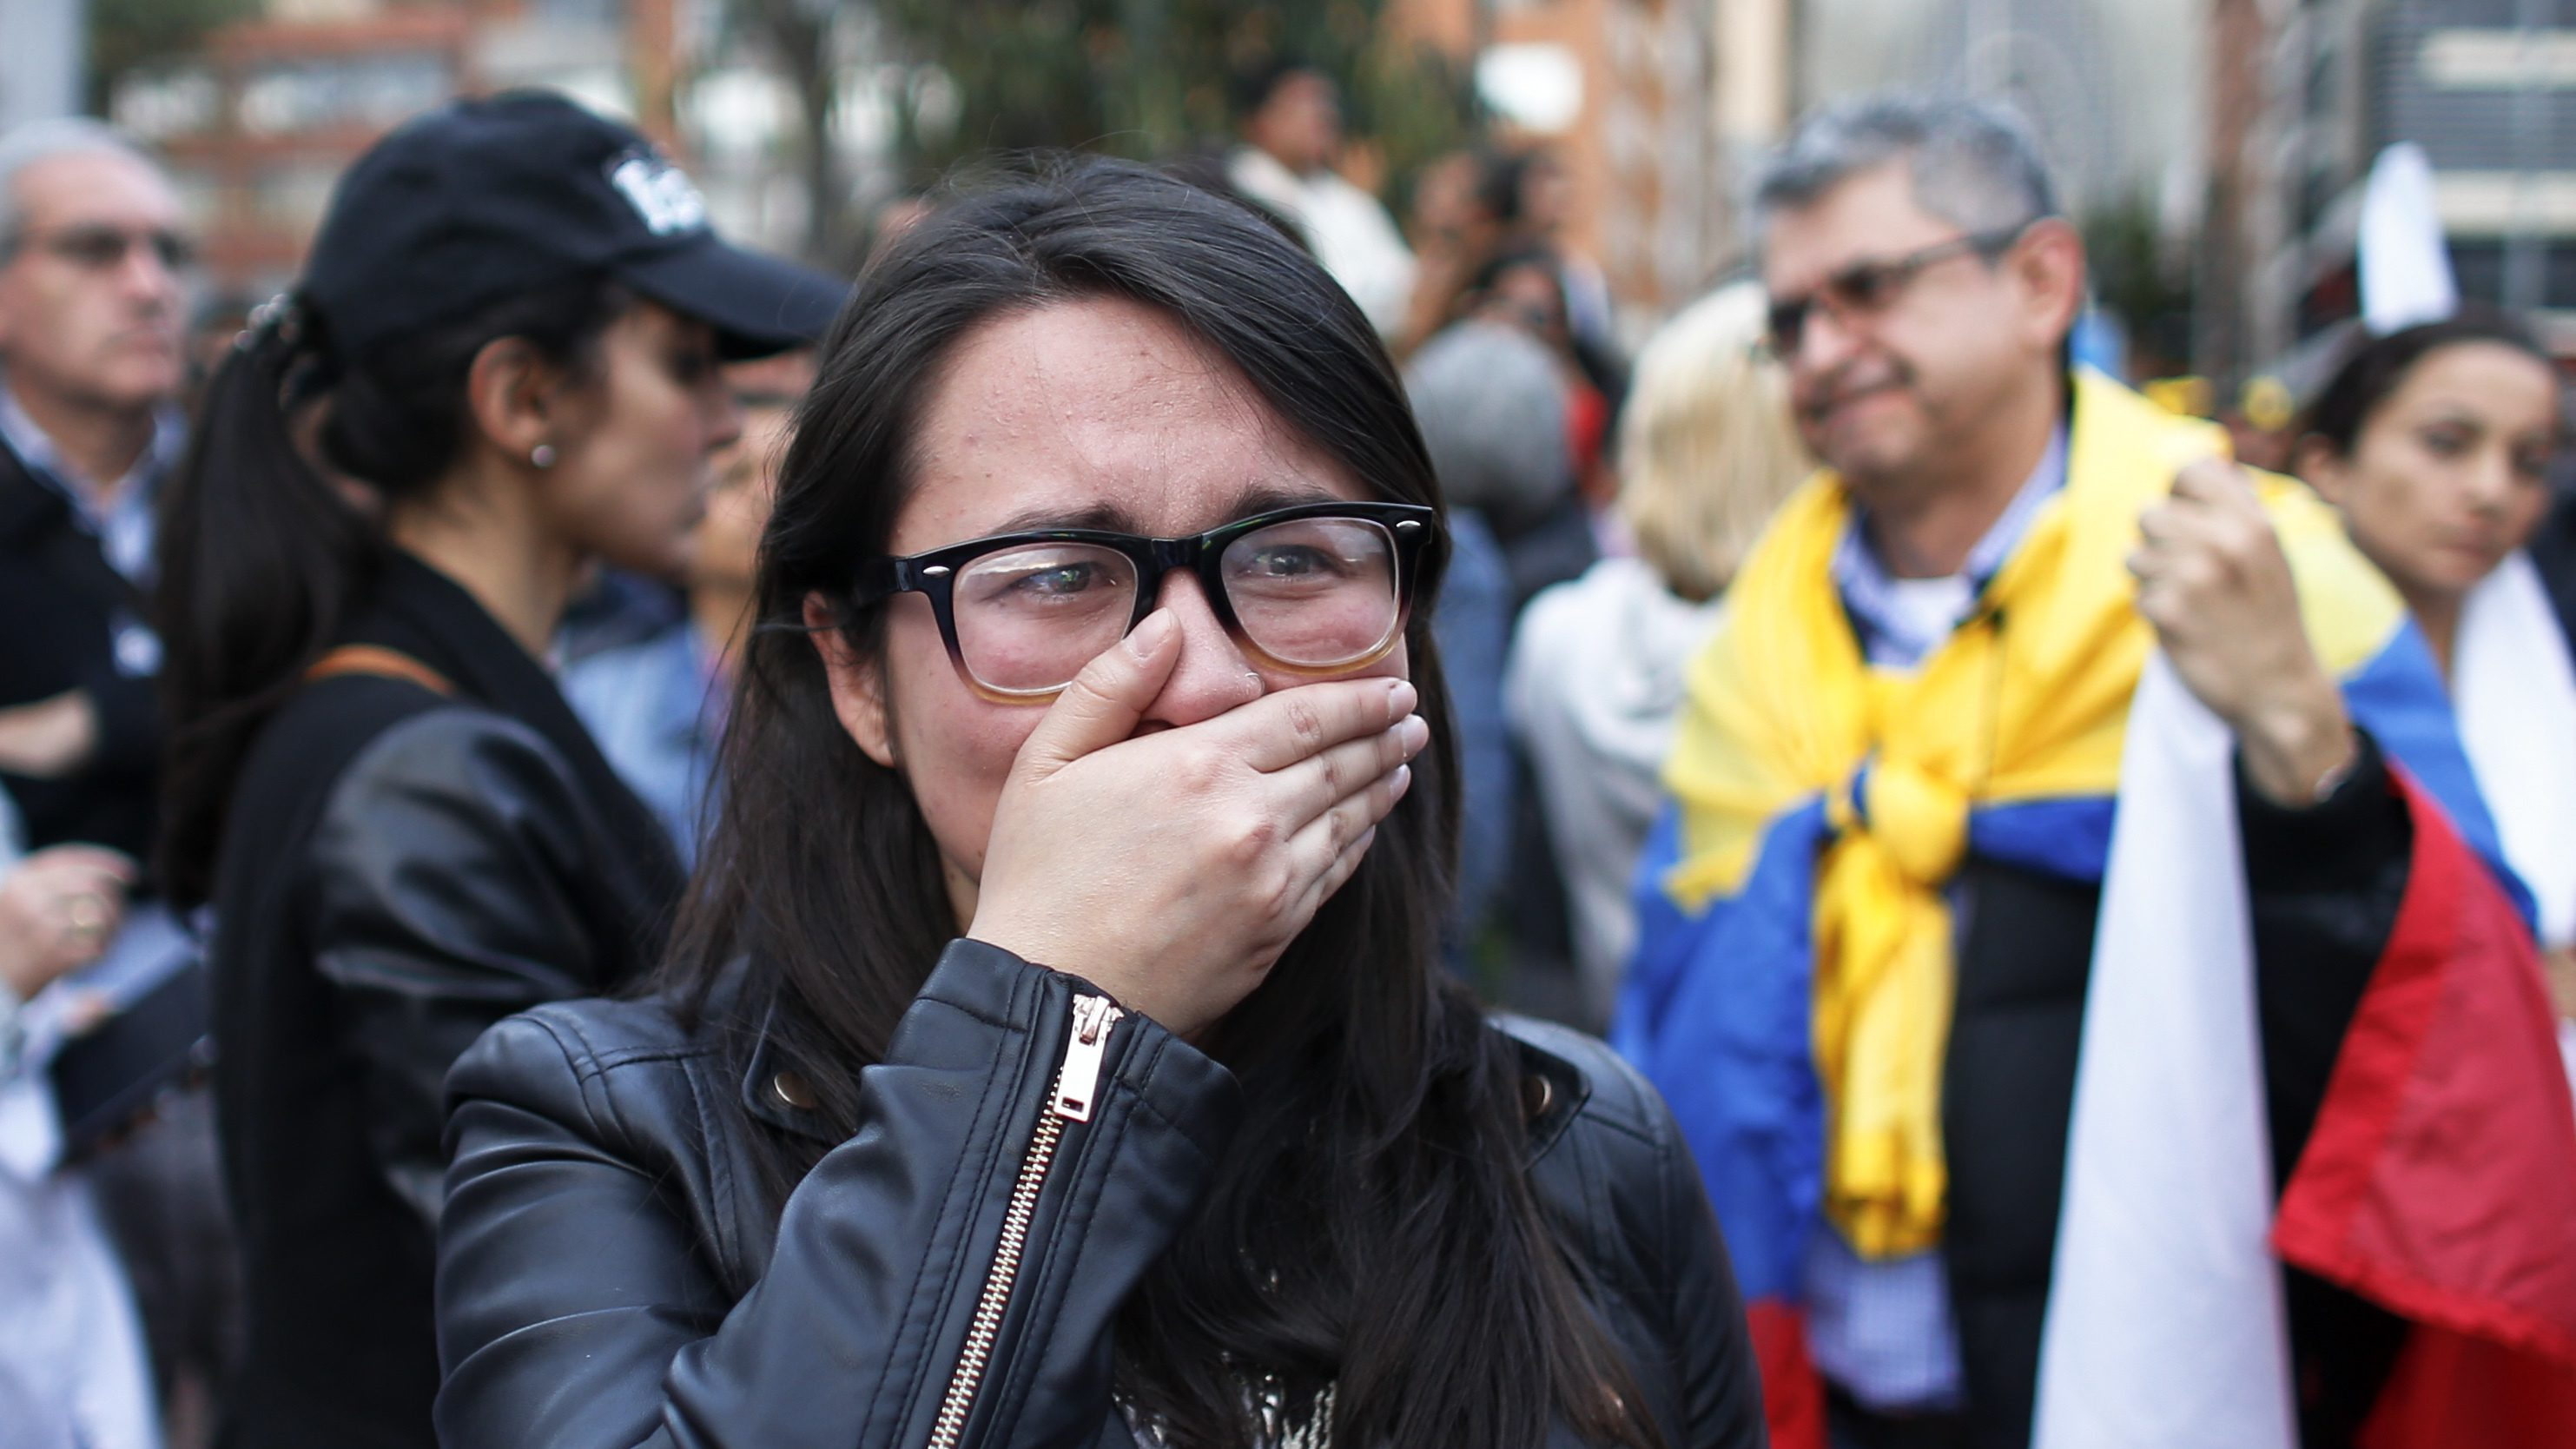 A supporters of the peace accord signed between the Colombian government and rebels of the Revolutionary Armed Forces of Colombia, FARC, cries as she follows on a giant screen the results of a referendum to decide whether or not to support the deal  in Bogota, Colombia, Sunday, Oct. 2, 2016.  Colombia's peace deal with leftist rebels was on the verge of collapsing in a national referendum Sunday, with those opposing the deal leading by a razor-thin margin with almost all votes counted. (AP Photo/Ariana Cubillos)